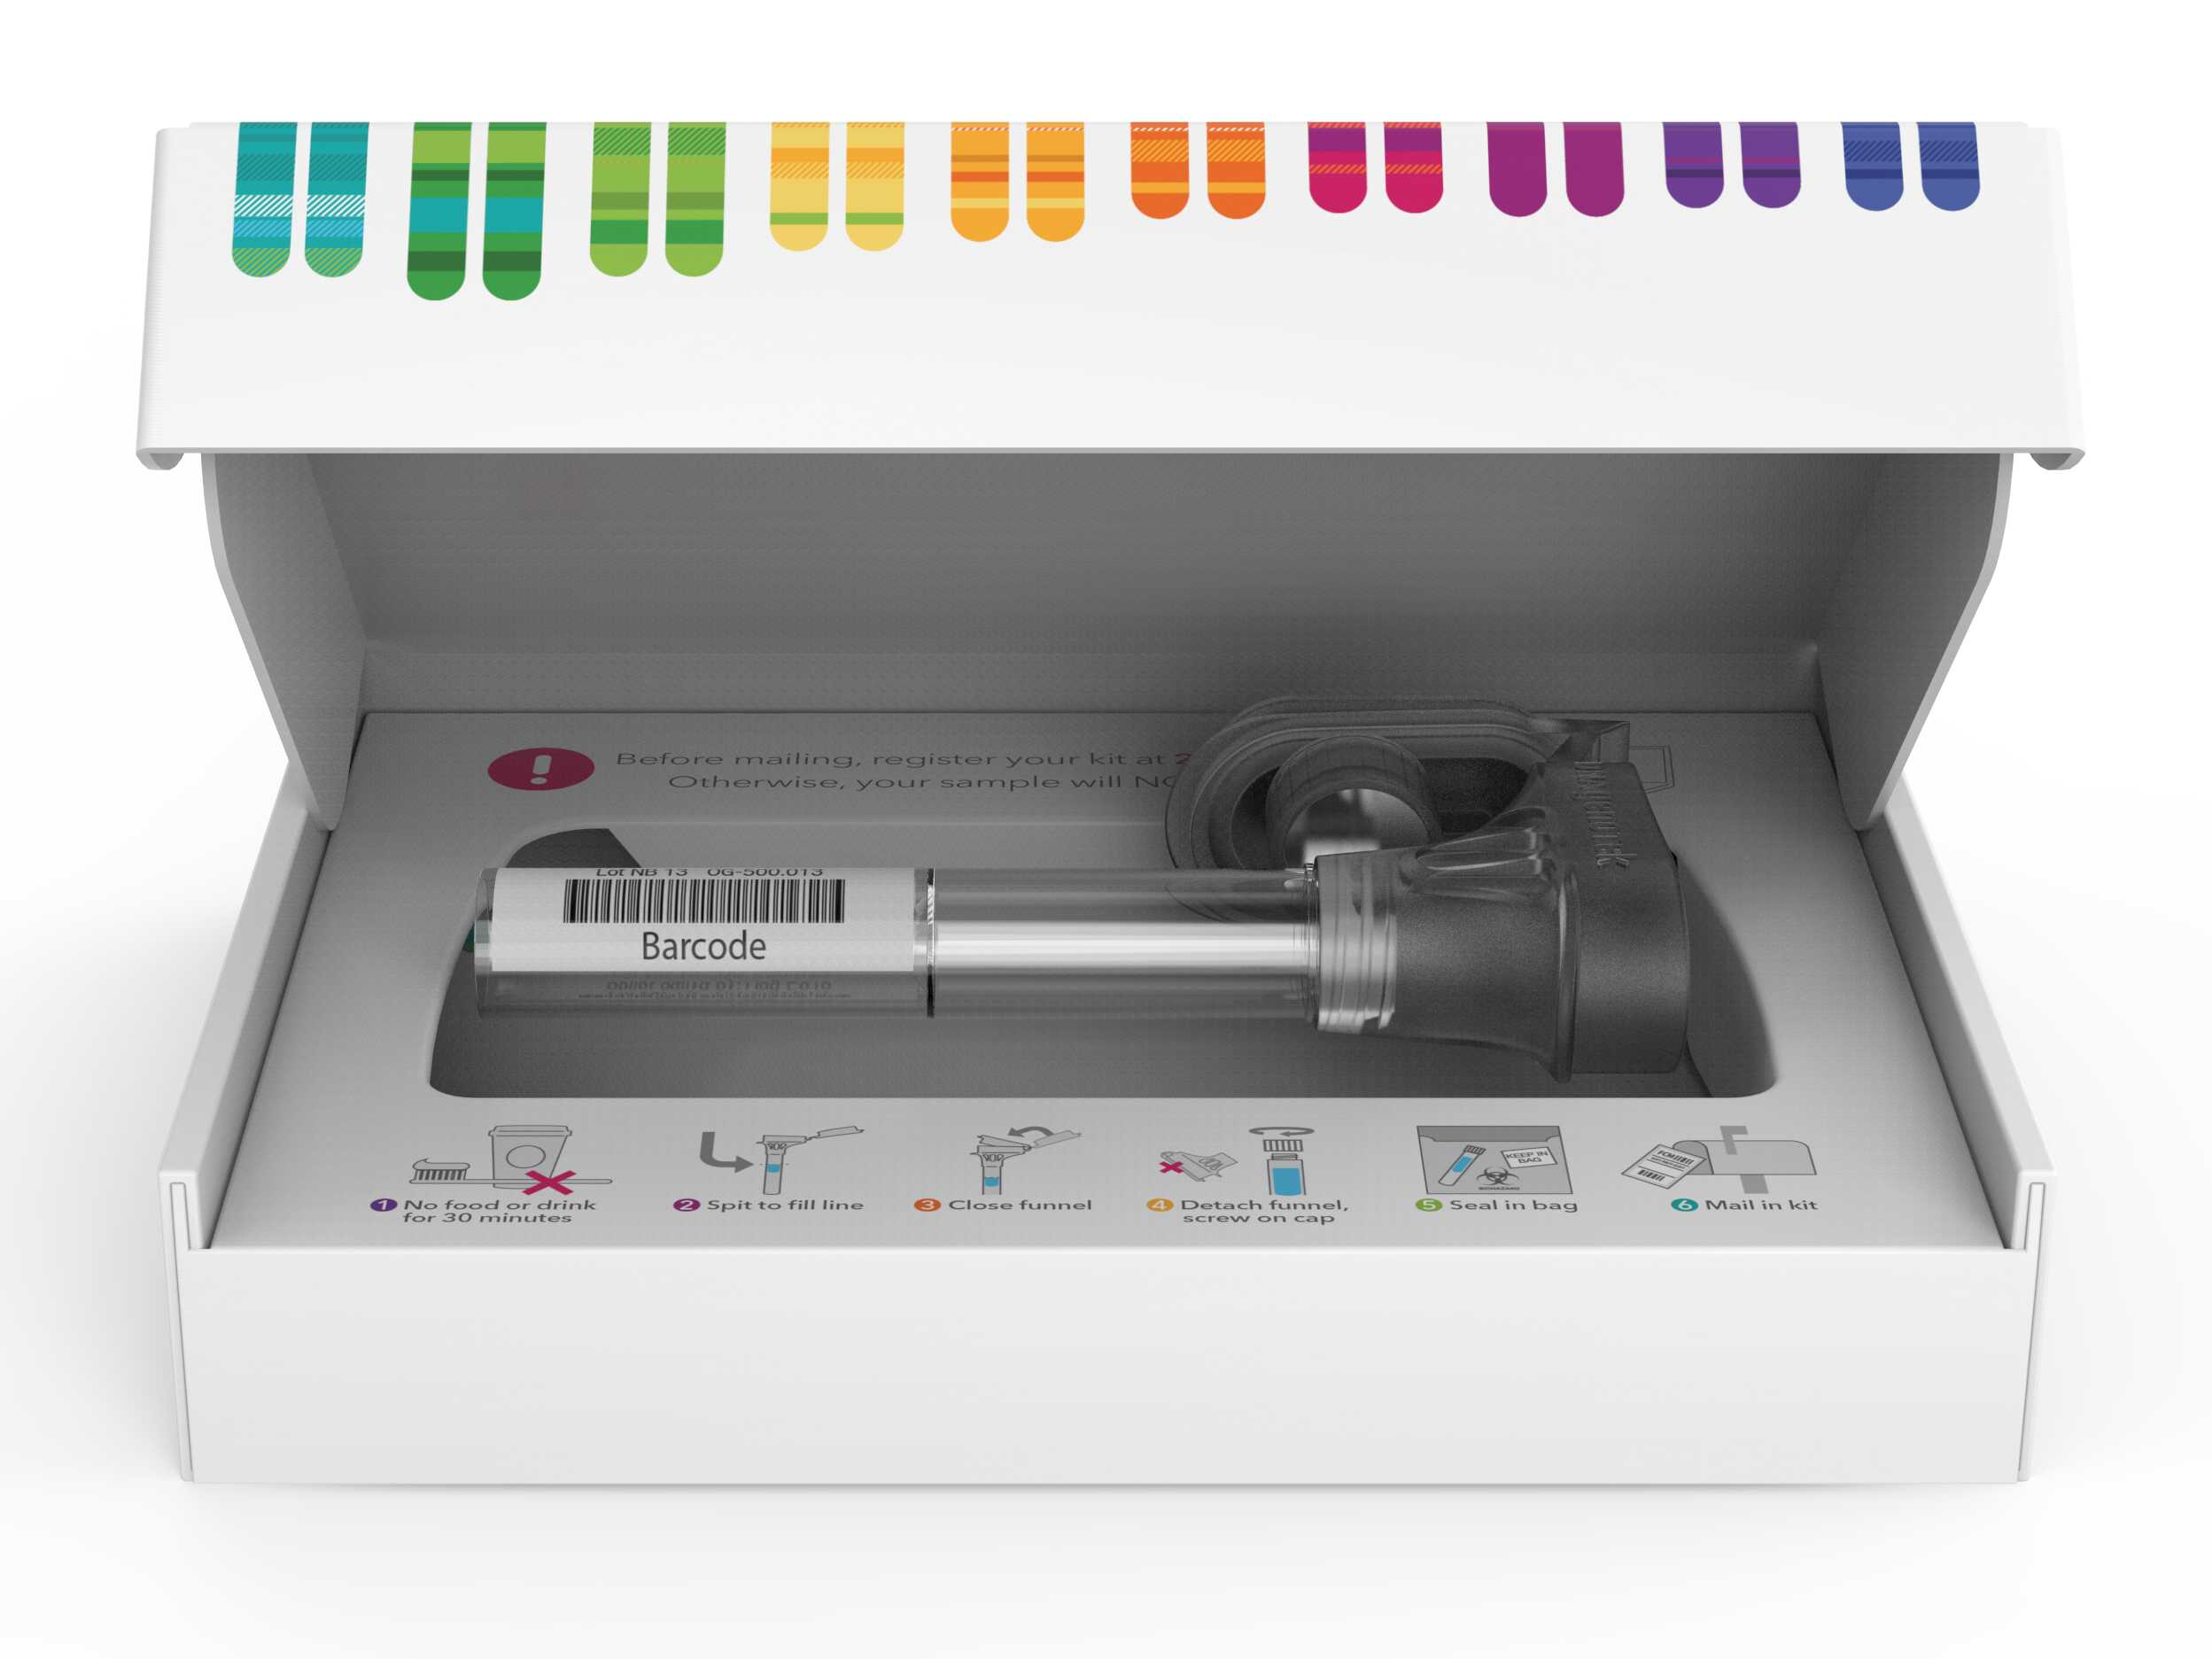 23 and Me mother's day DNA testing kit gift idea